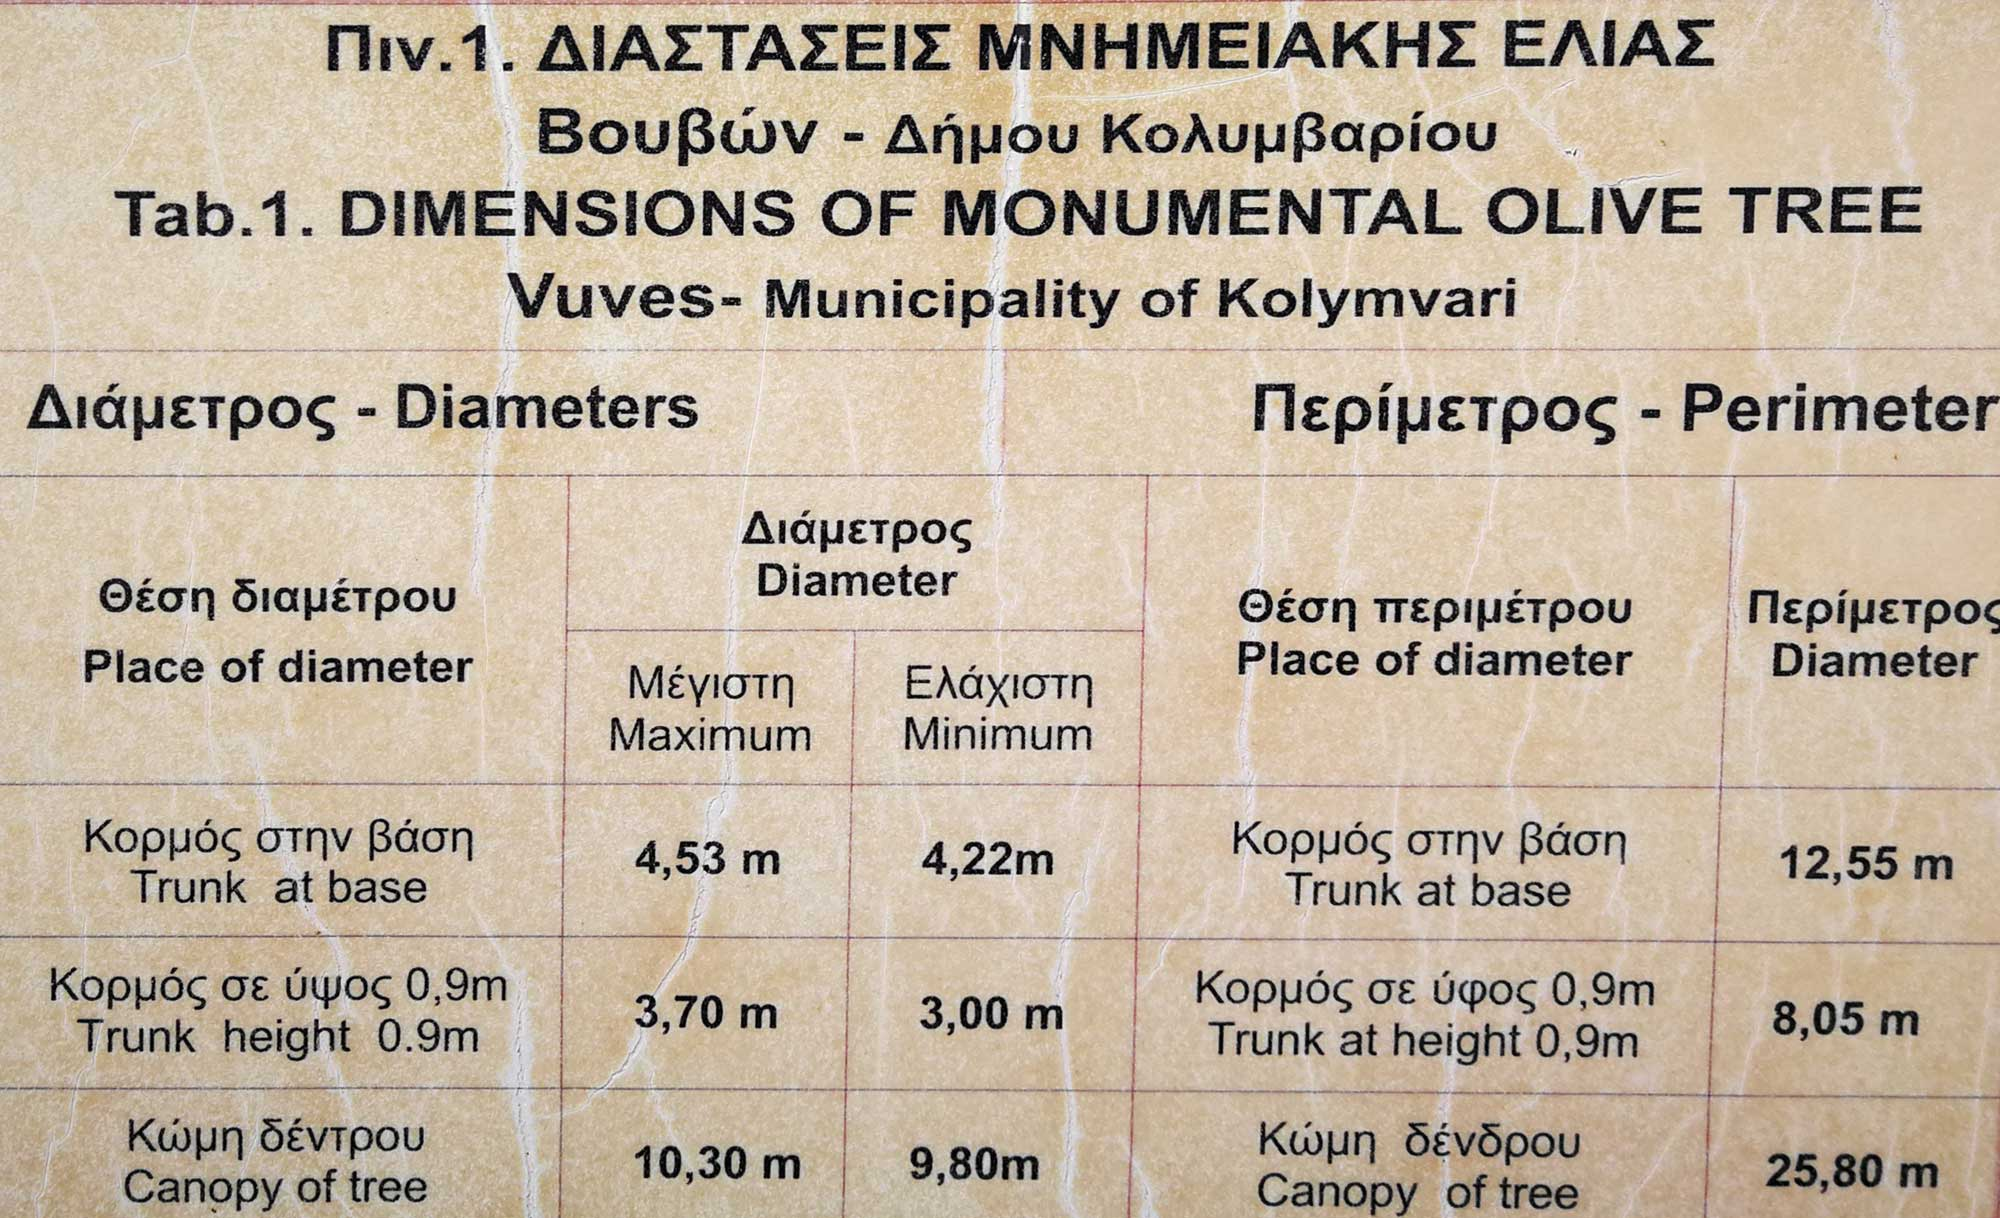 Dimensions of the Monumental Olive Tree of Vouves.